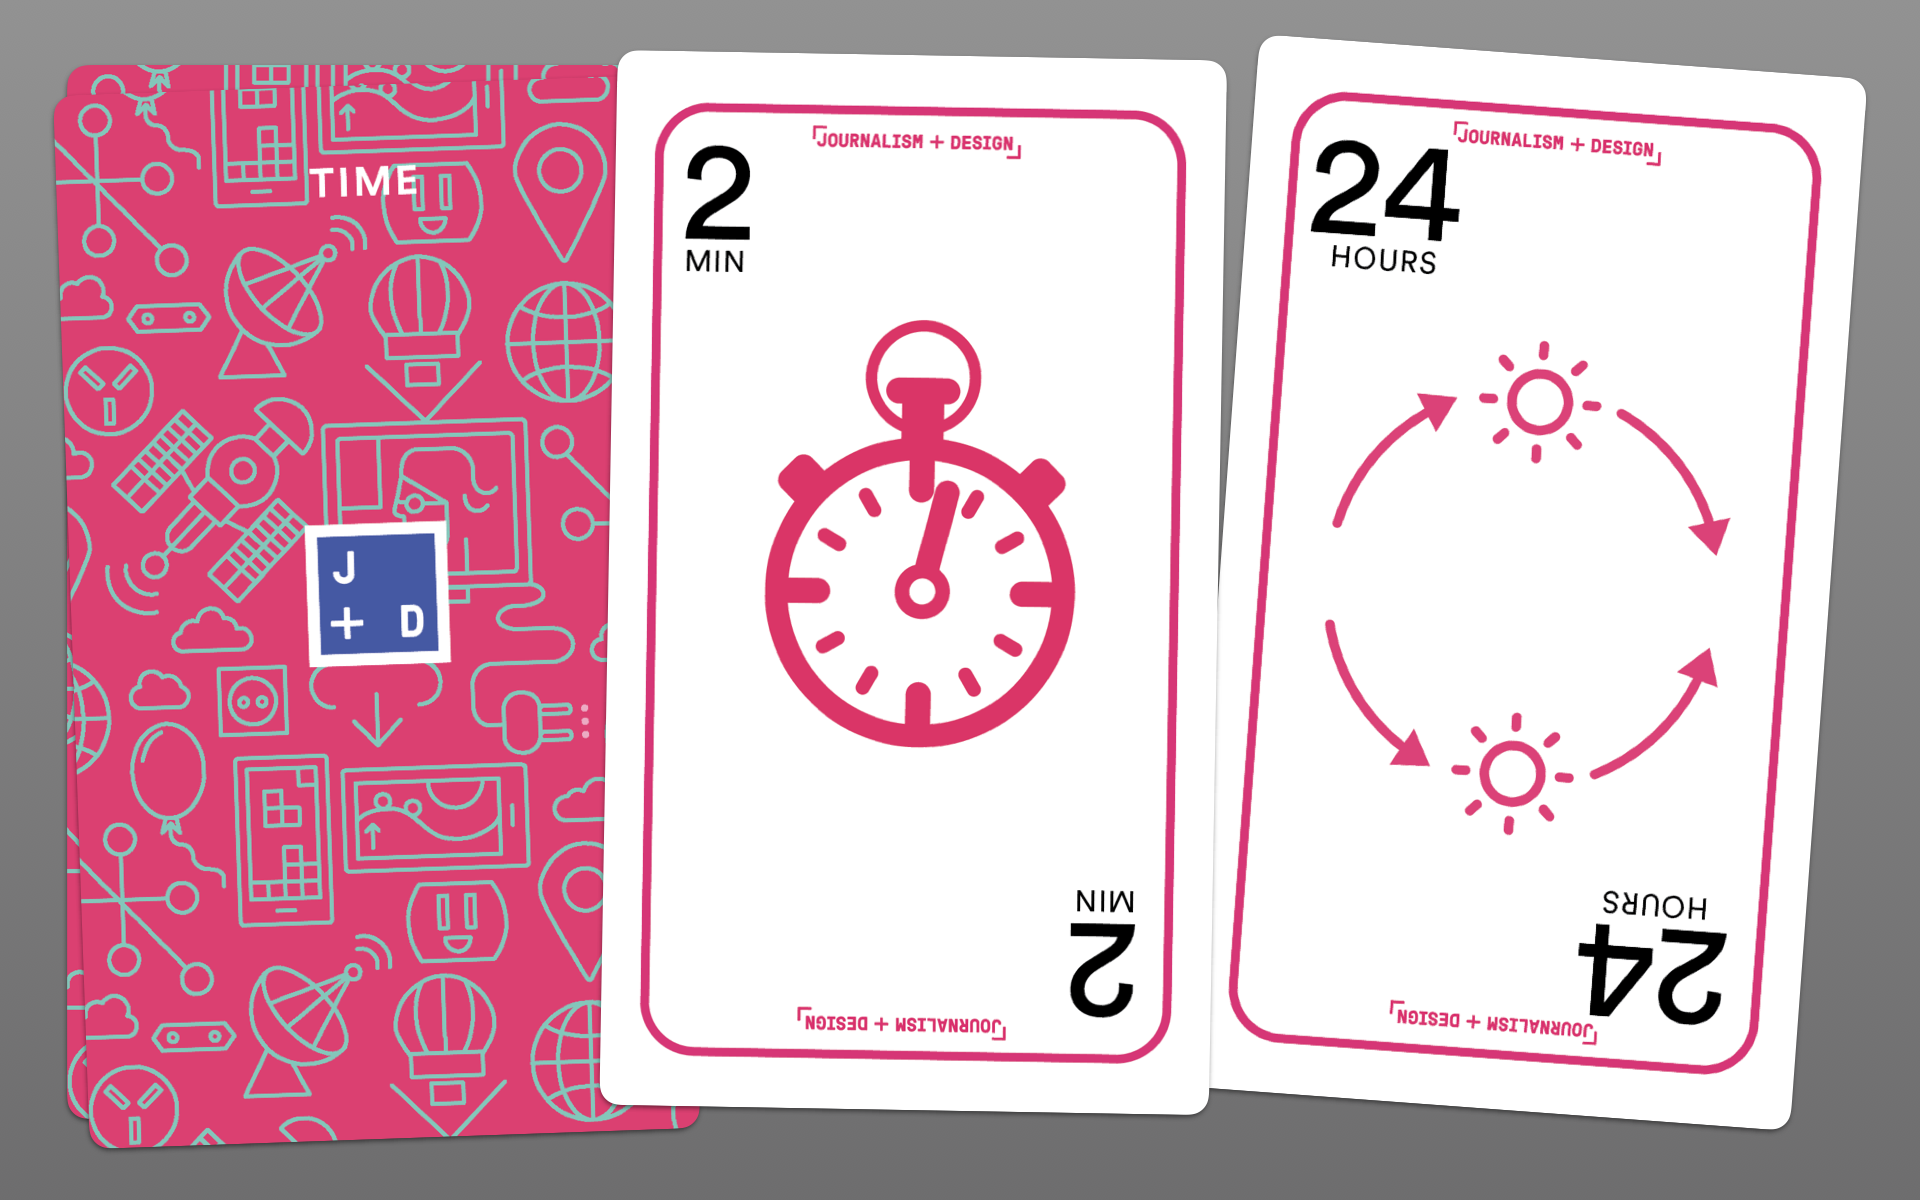 TIME CARDS  Limits can encourage low-stakes experiments that stretch the mind and foster creativity.